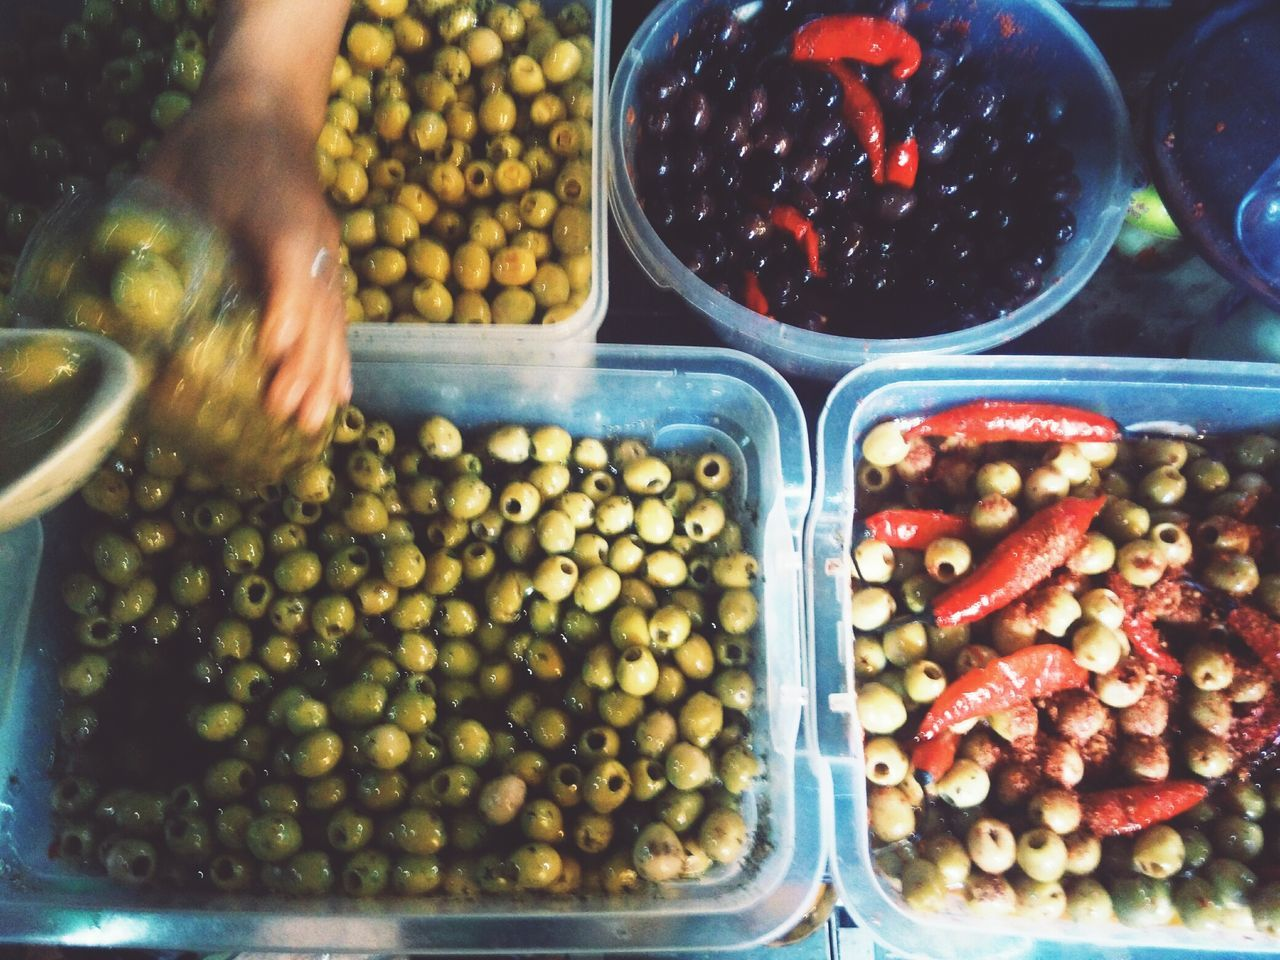 Food Market Olives Puerto Iguazu Argentina Food And Drink For Sale No People